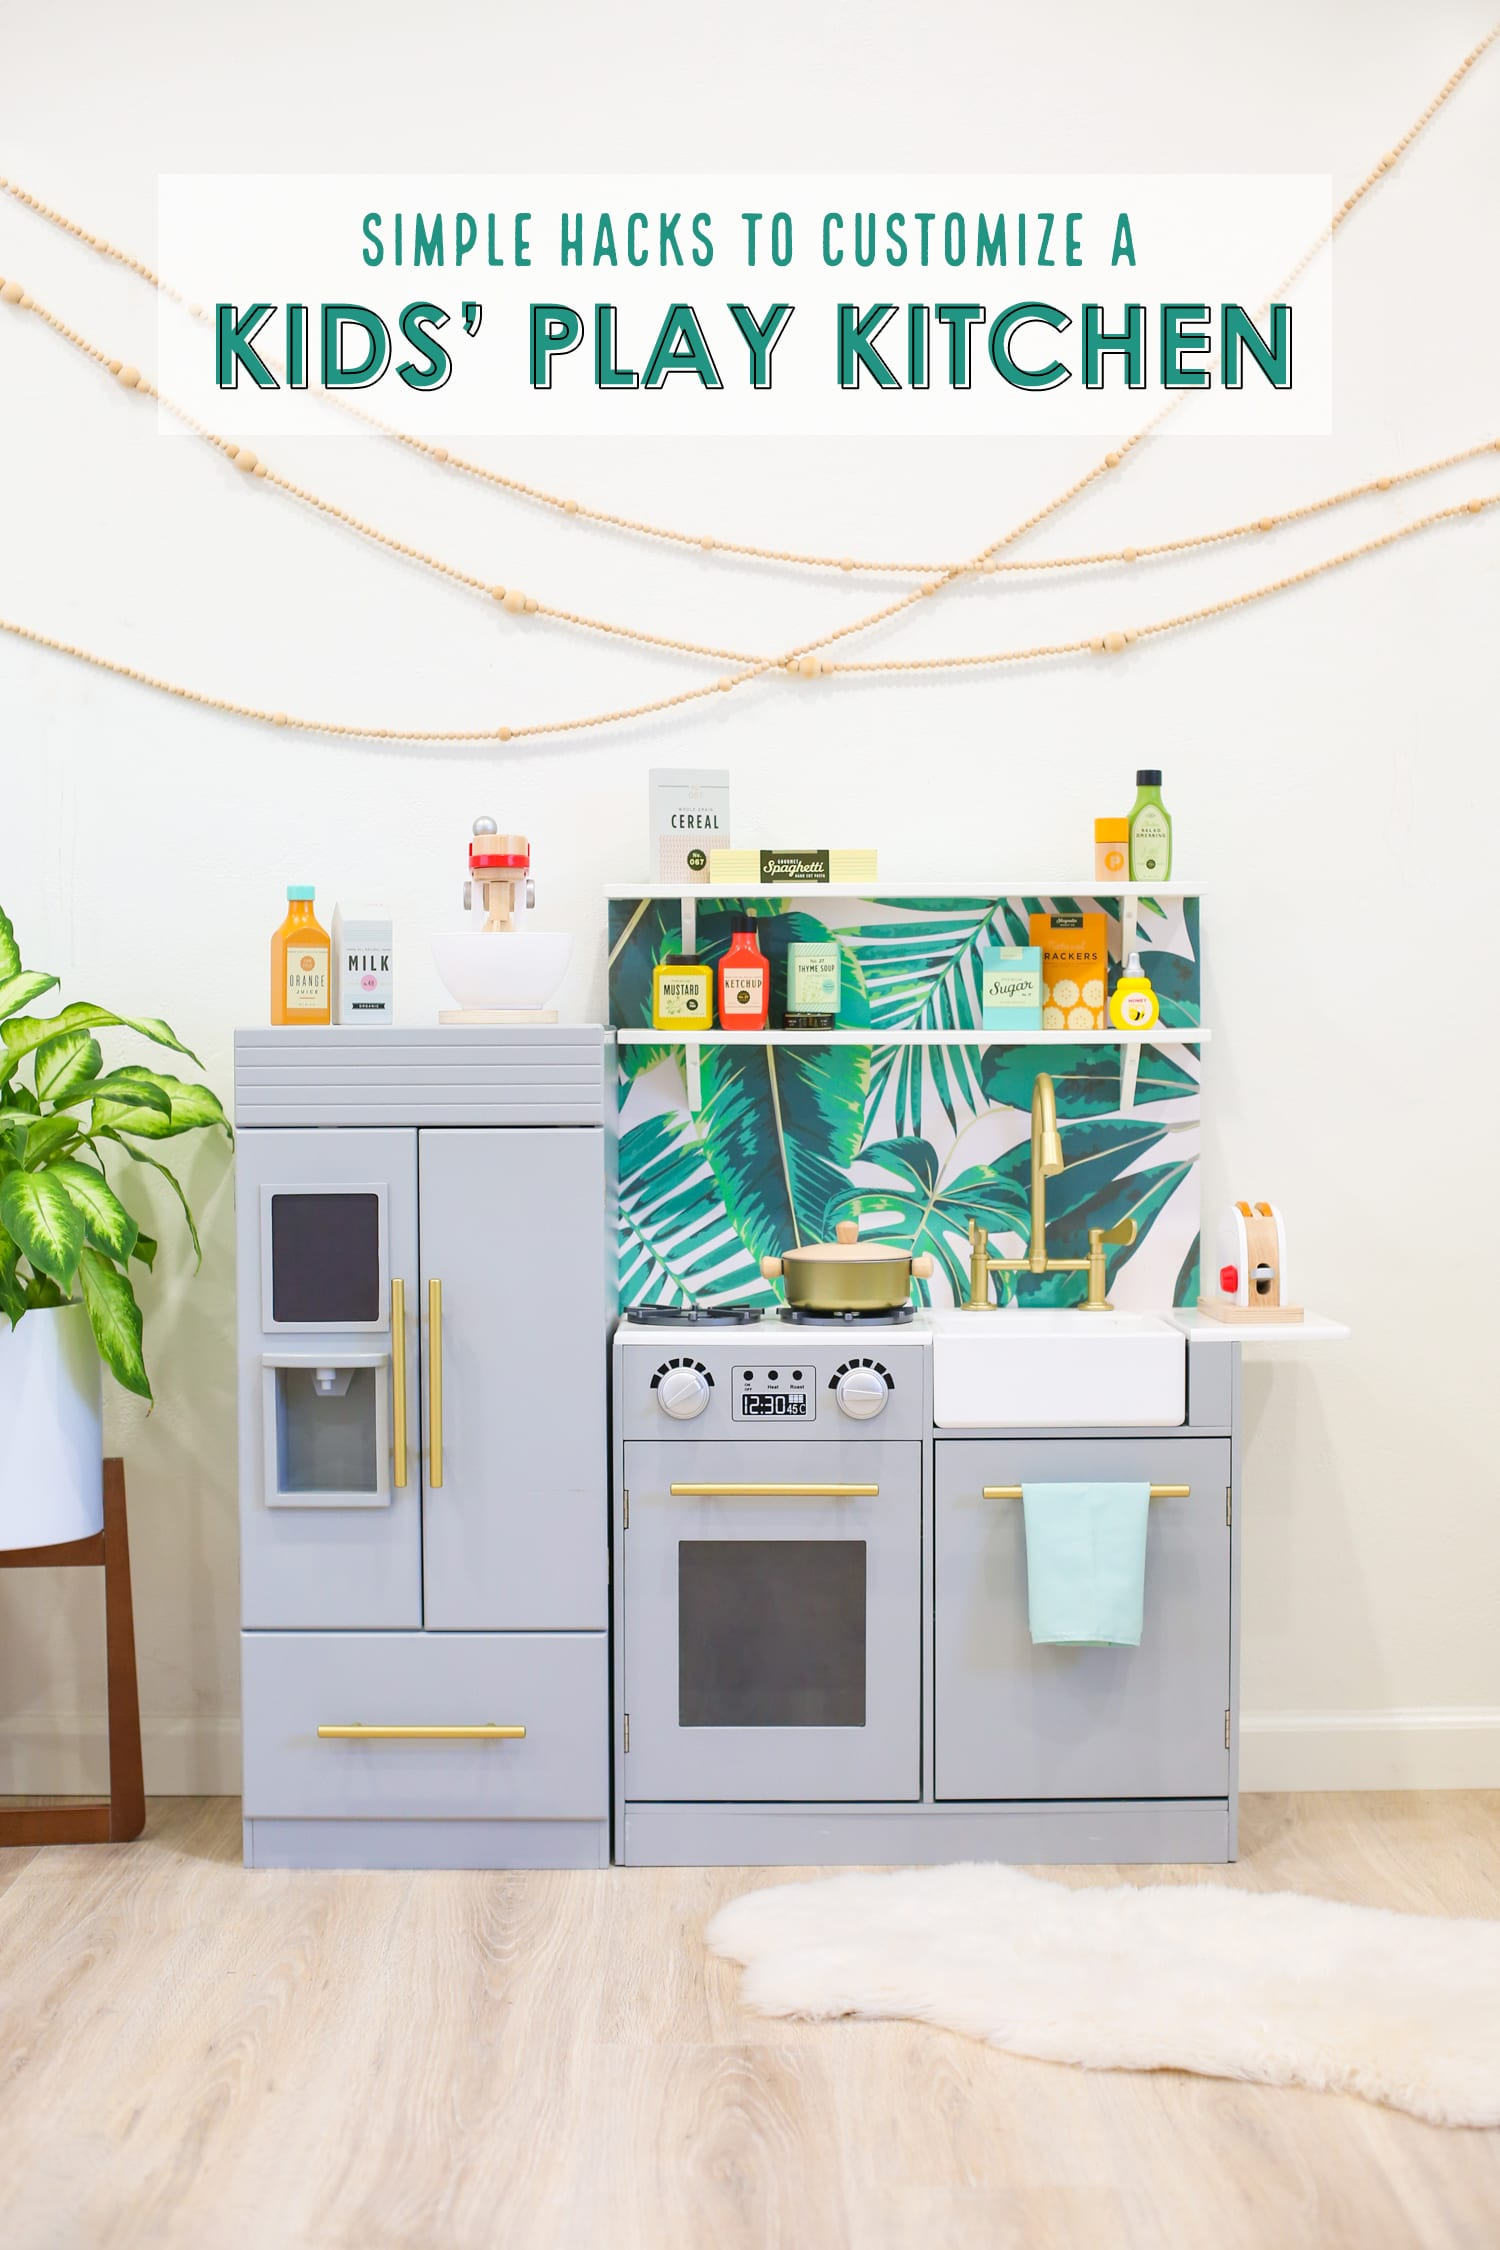 DIY Kids' Play Kitchen Hacks (And Our